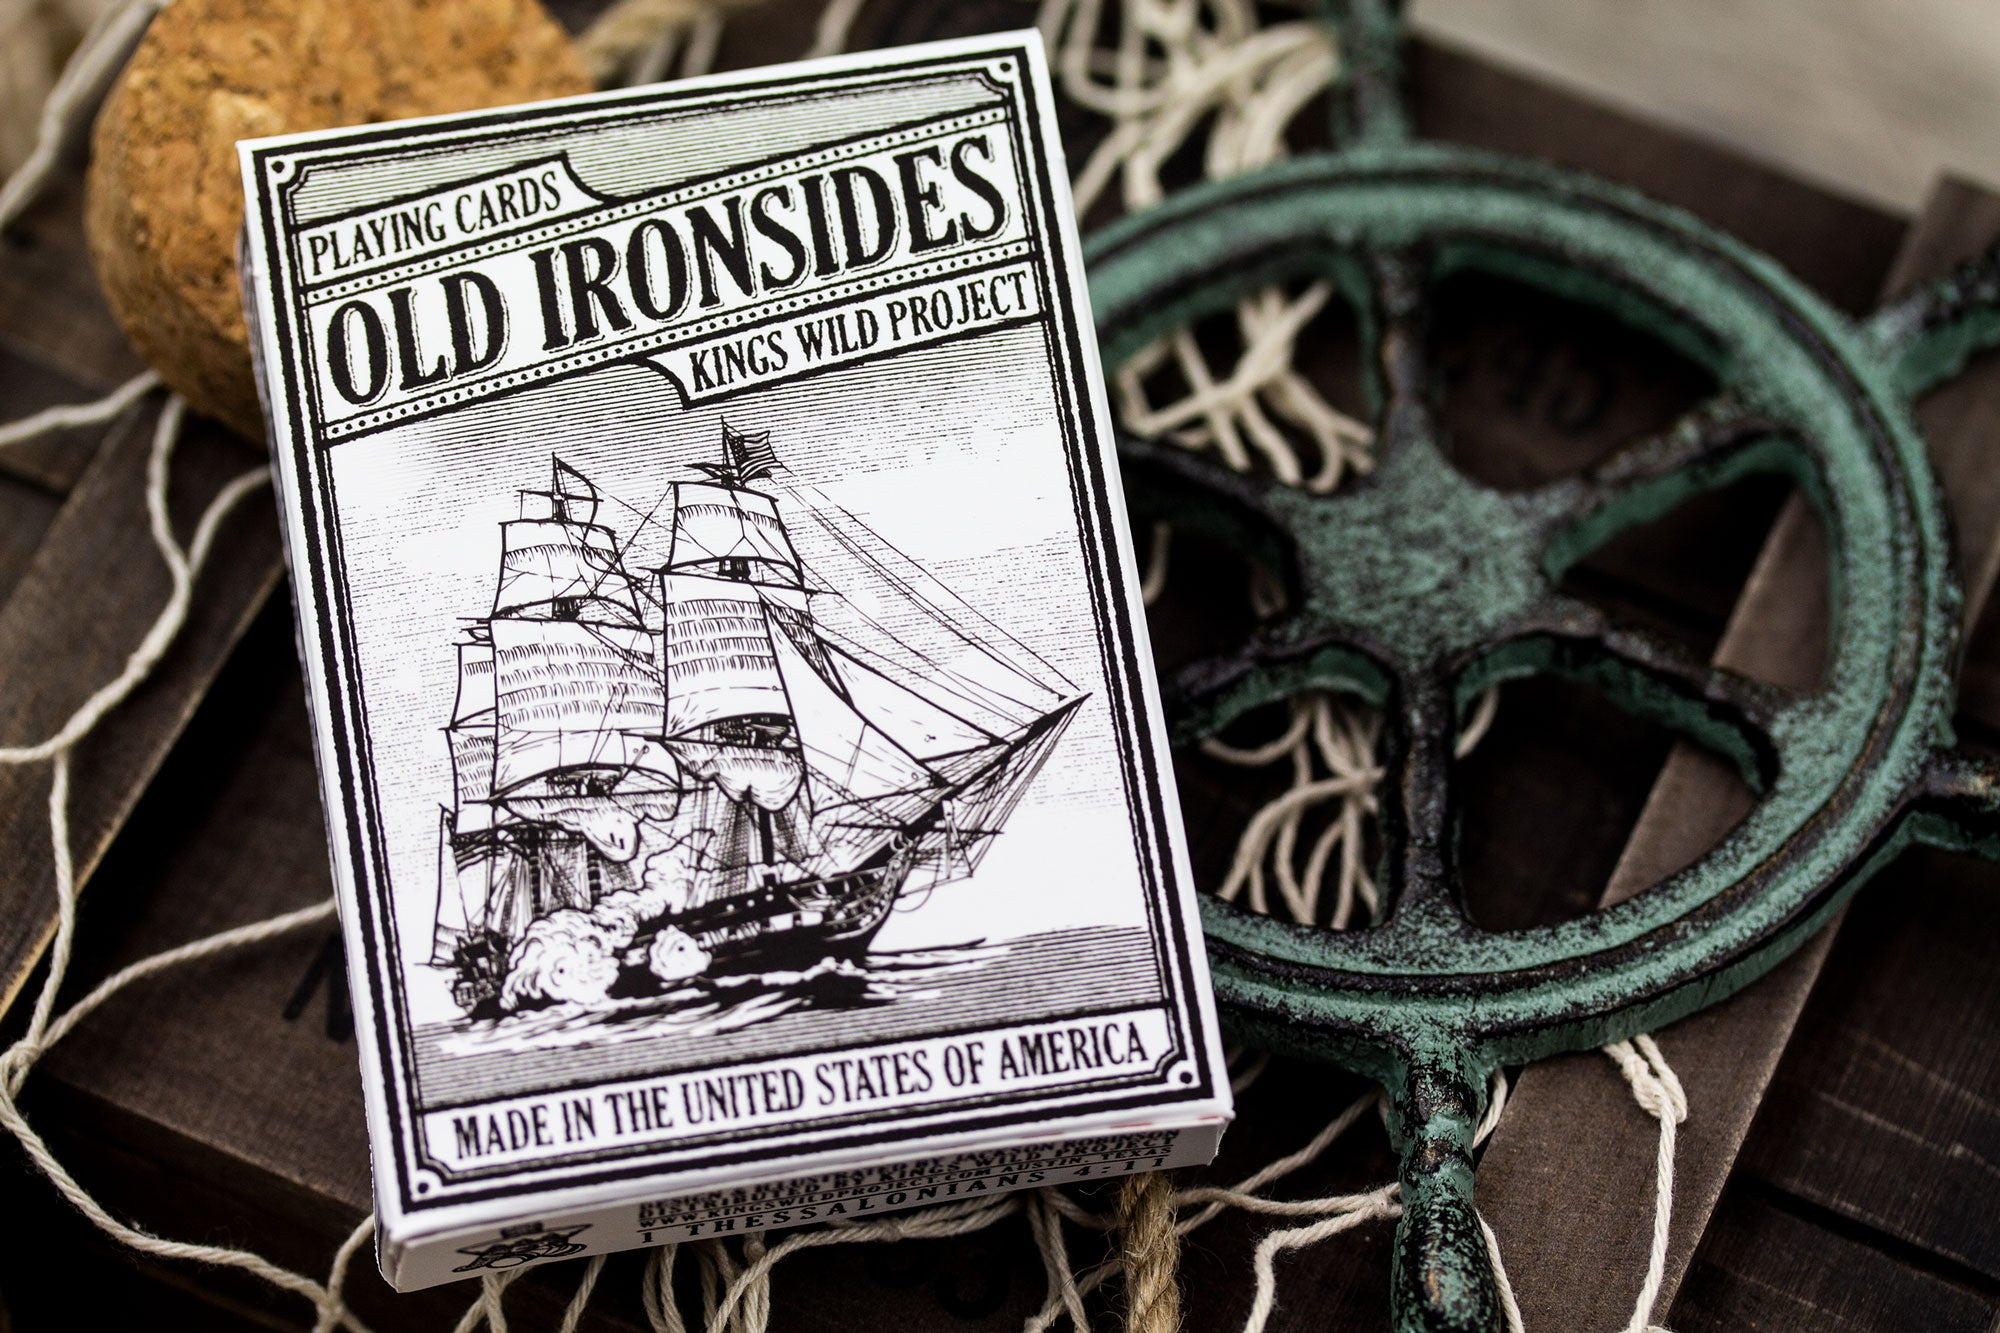 2019 Old Ironsides - Standard